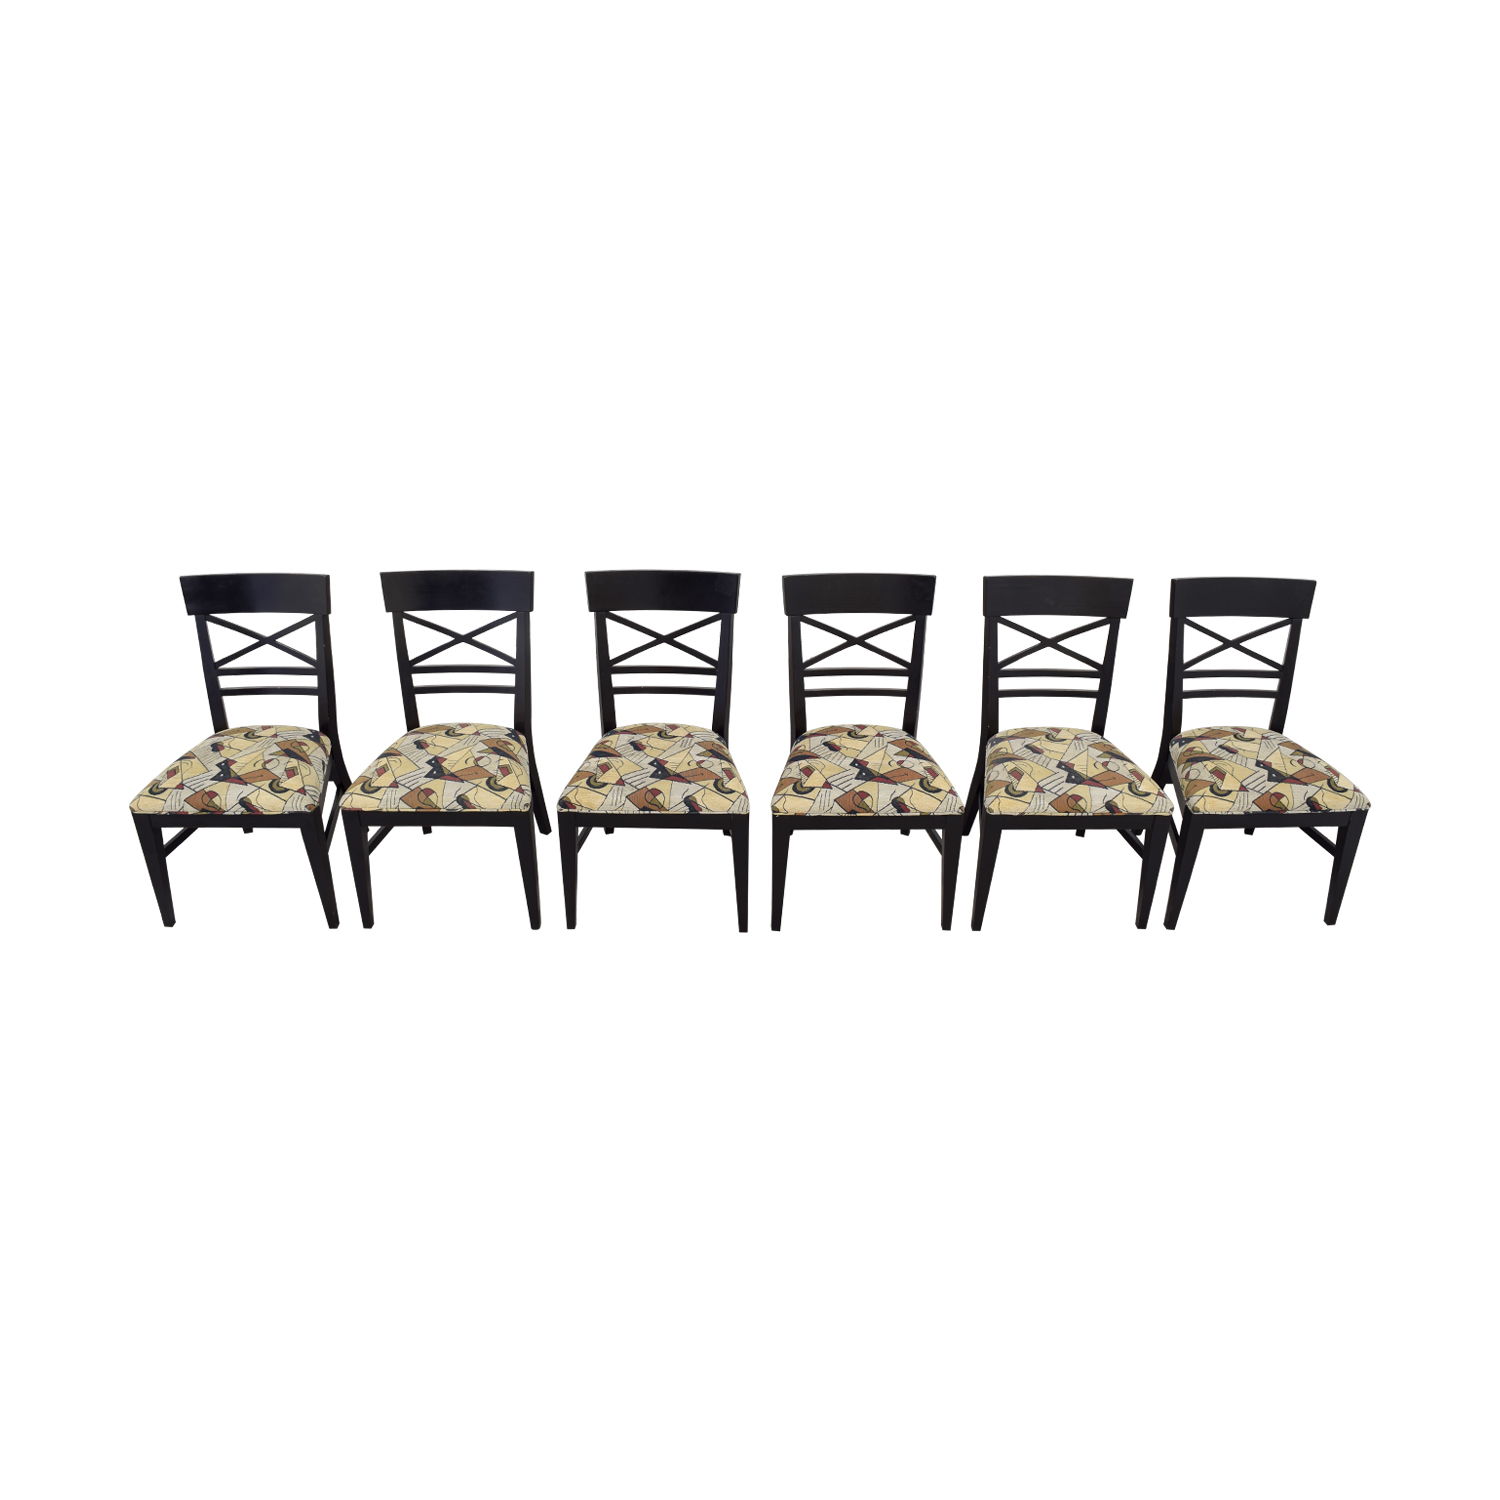 Ethan Allan Ethan Allan Geometric Upholstered Dining Chairs dimensions